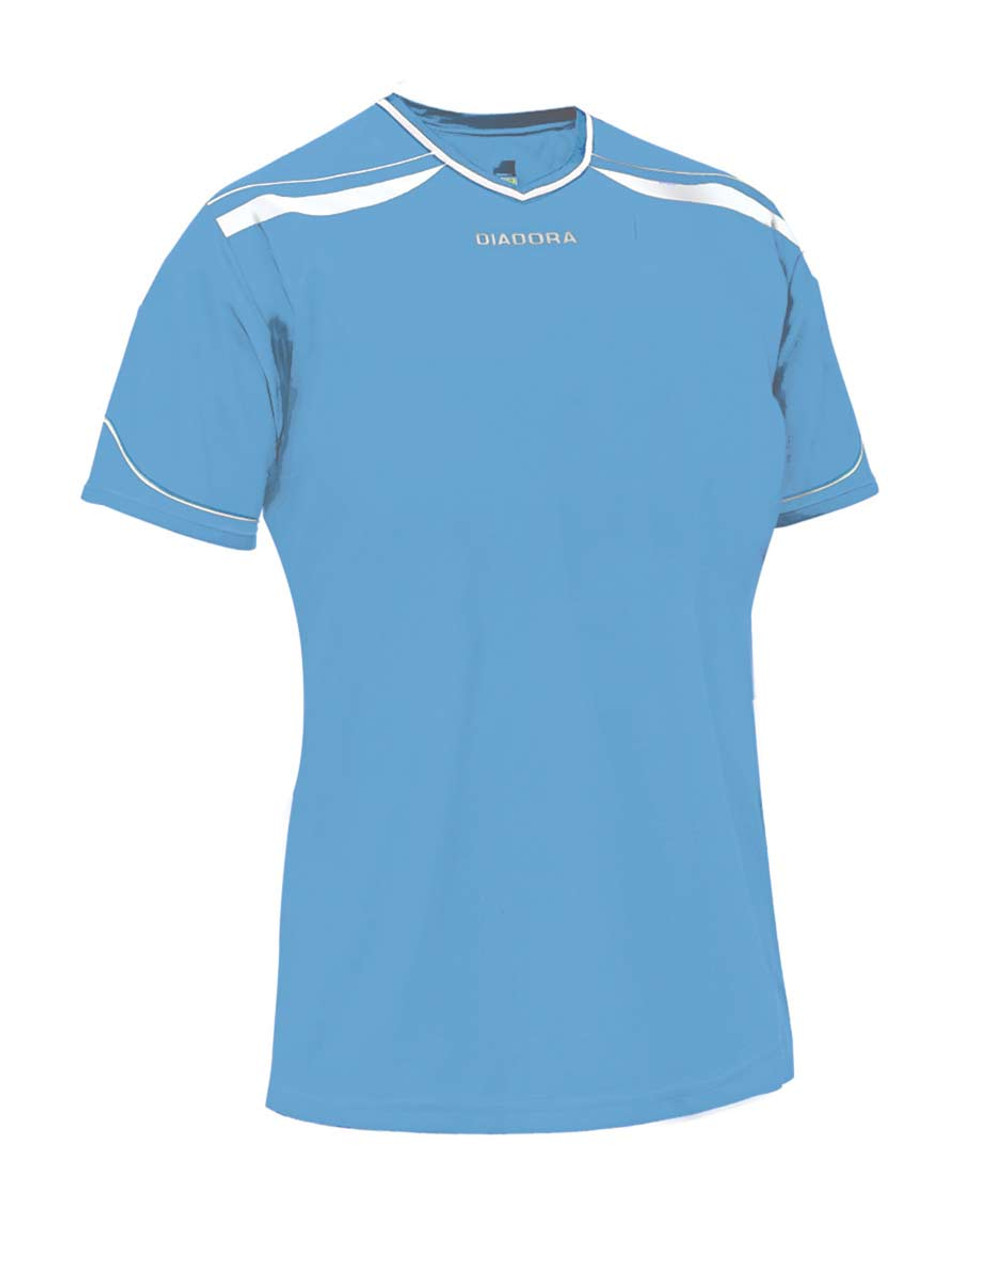 c45fee580 Diadora Treviso soccer jersey - Youth and Adult Soccer Uniforms ...